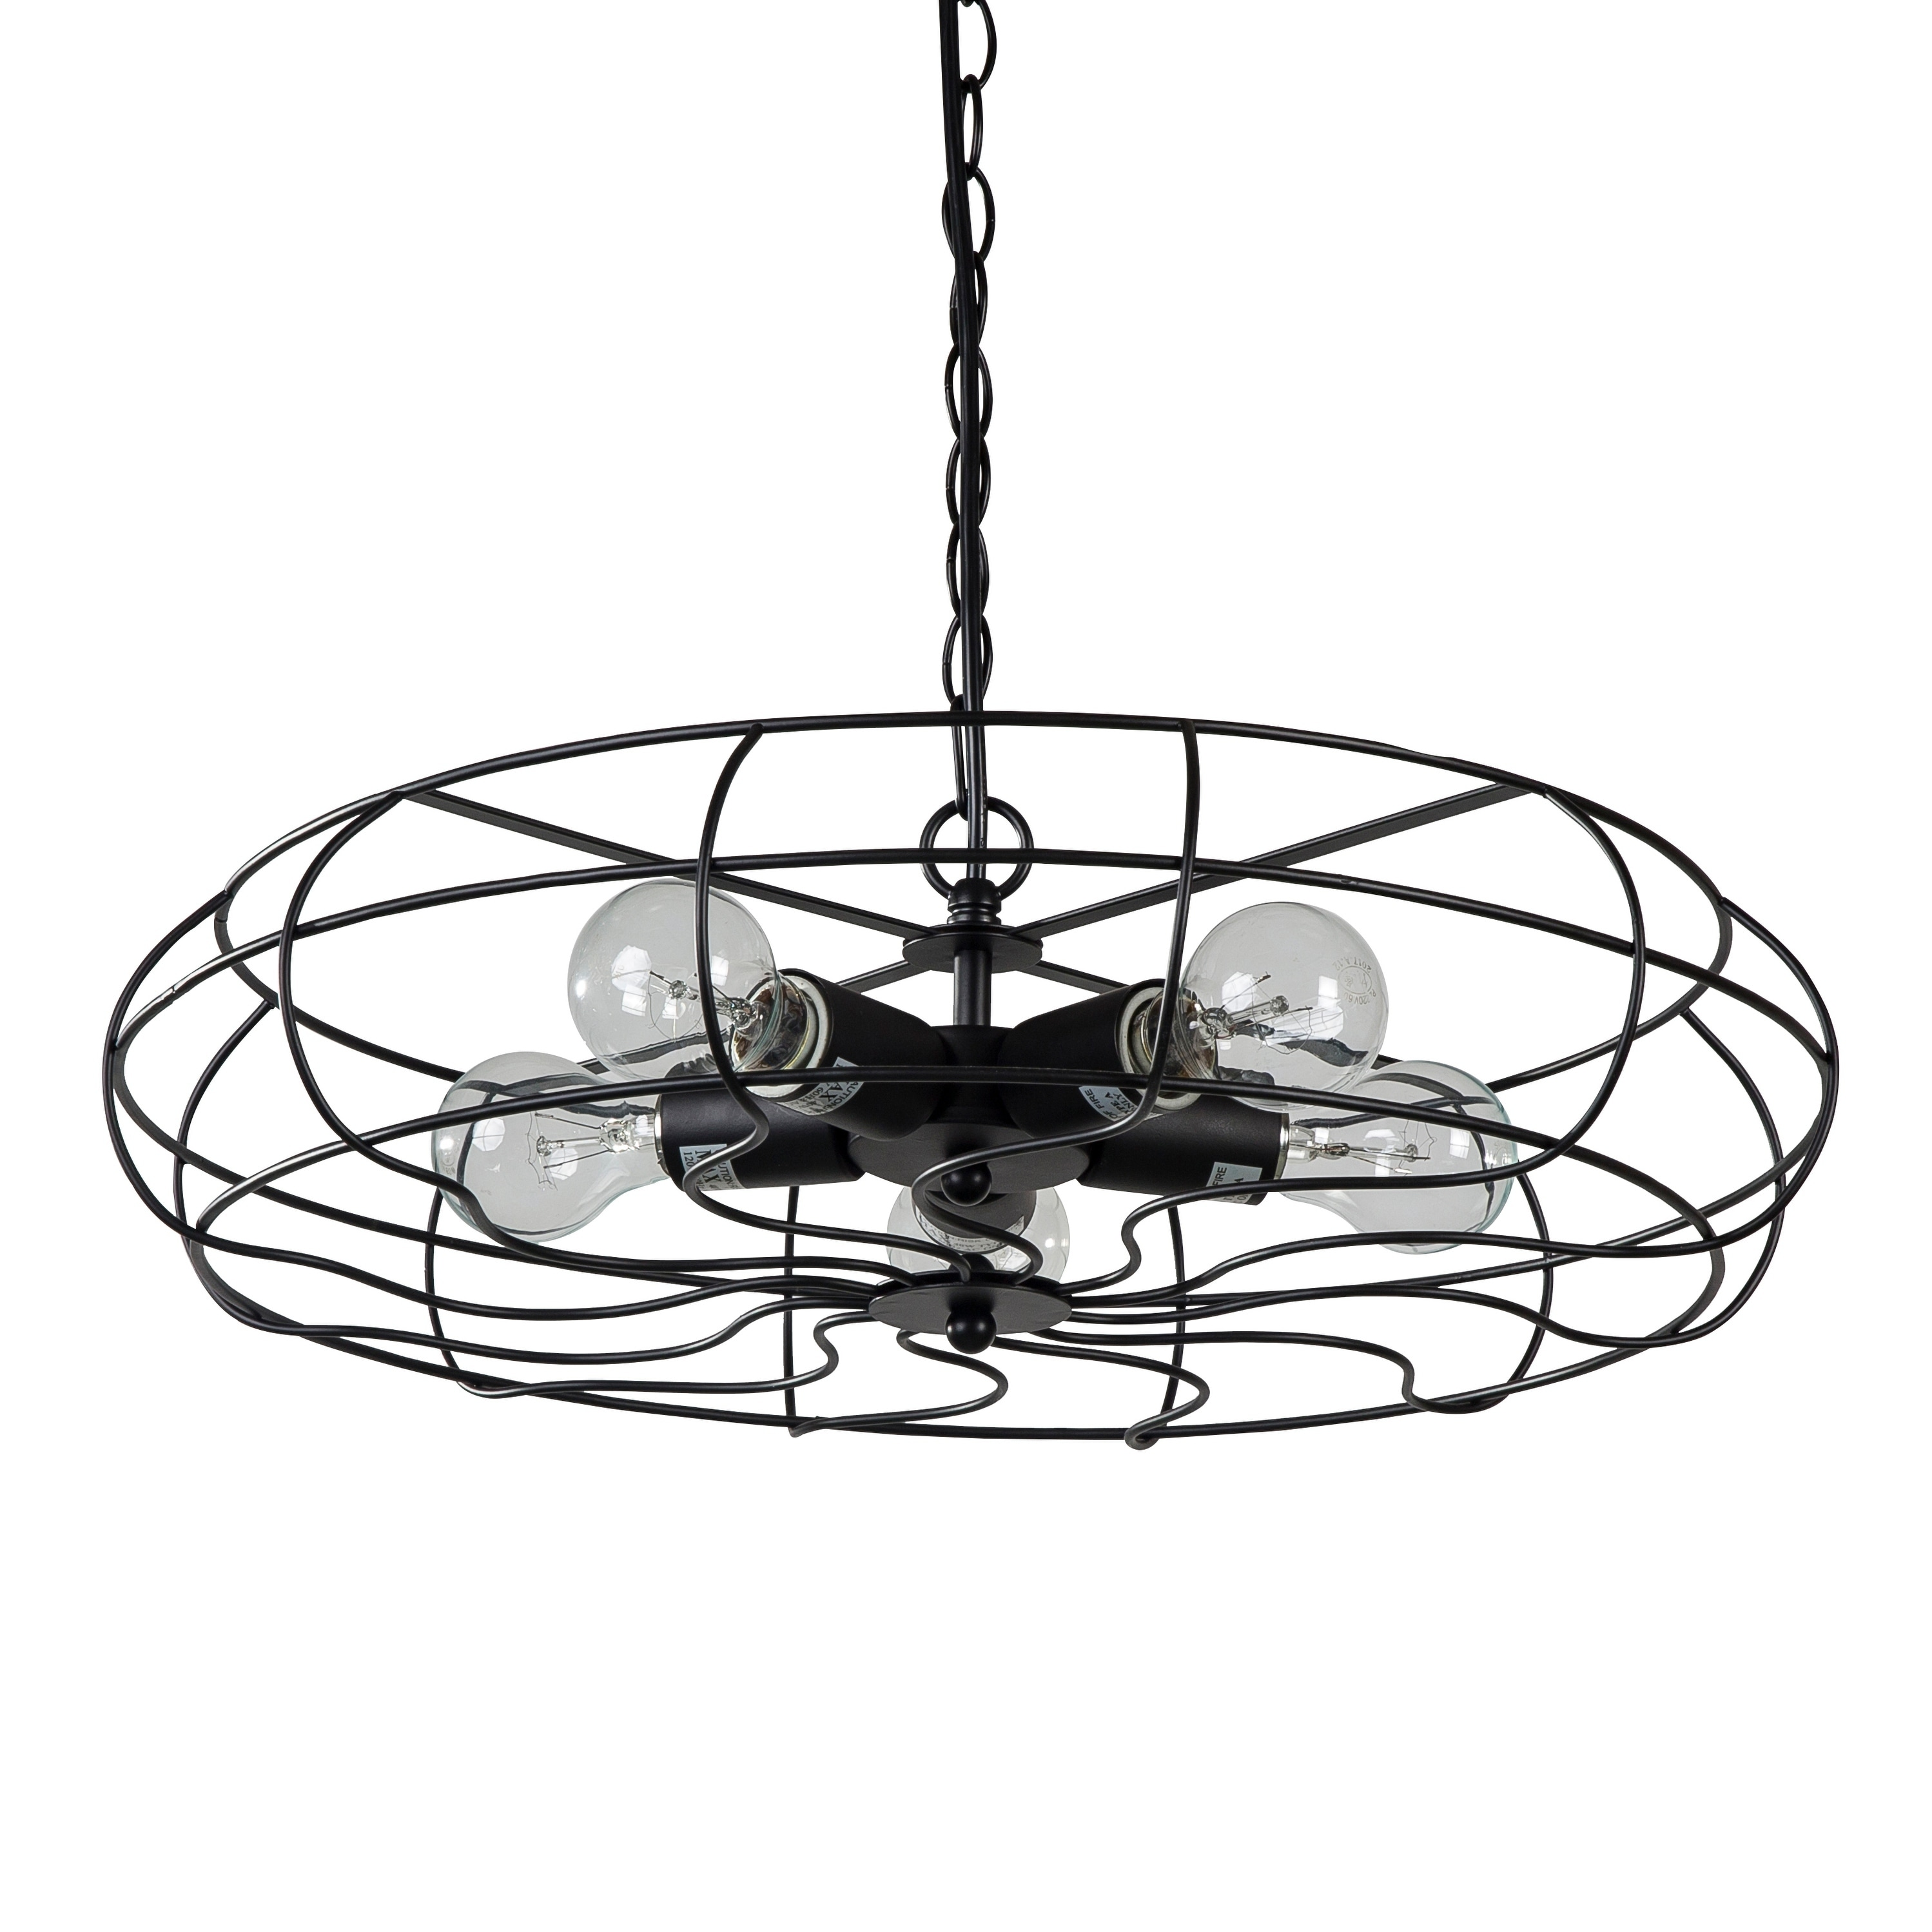 shop vintage hanging industrial chandelier 5 lights black fan style Industrial Style Ceiling Fans shop vintage hanging industrial chandelier 5 lights black fan style cage metal free shipping today overstock 23148110